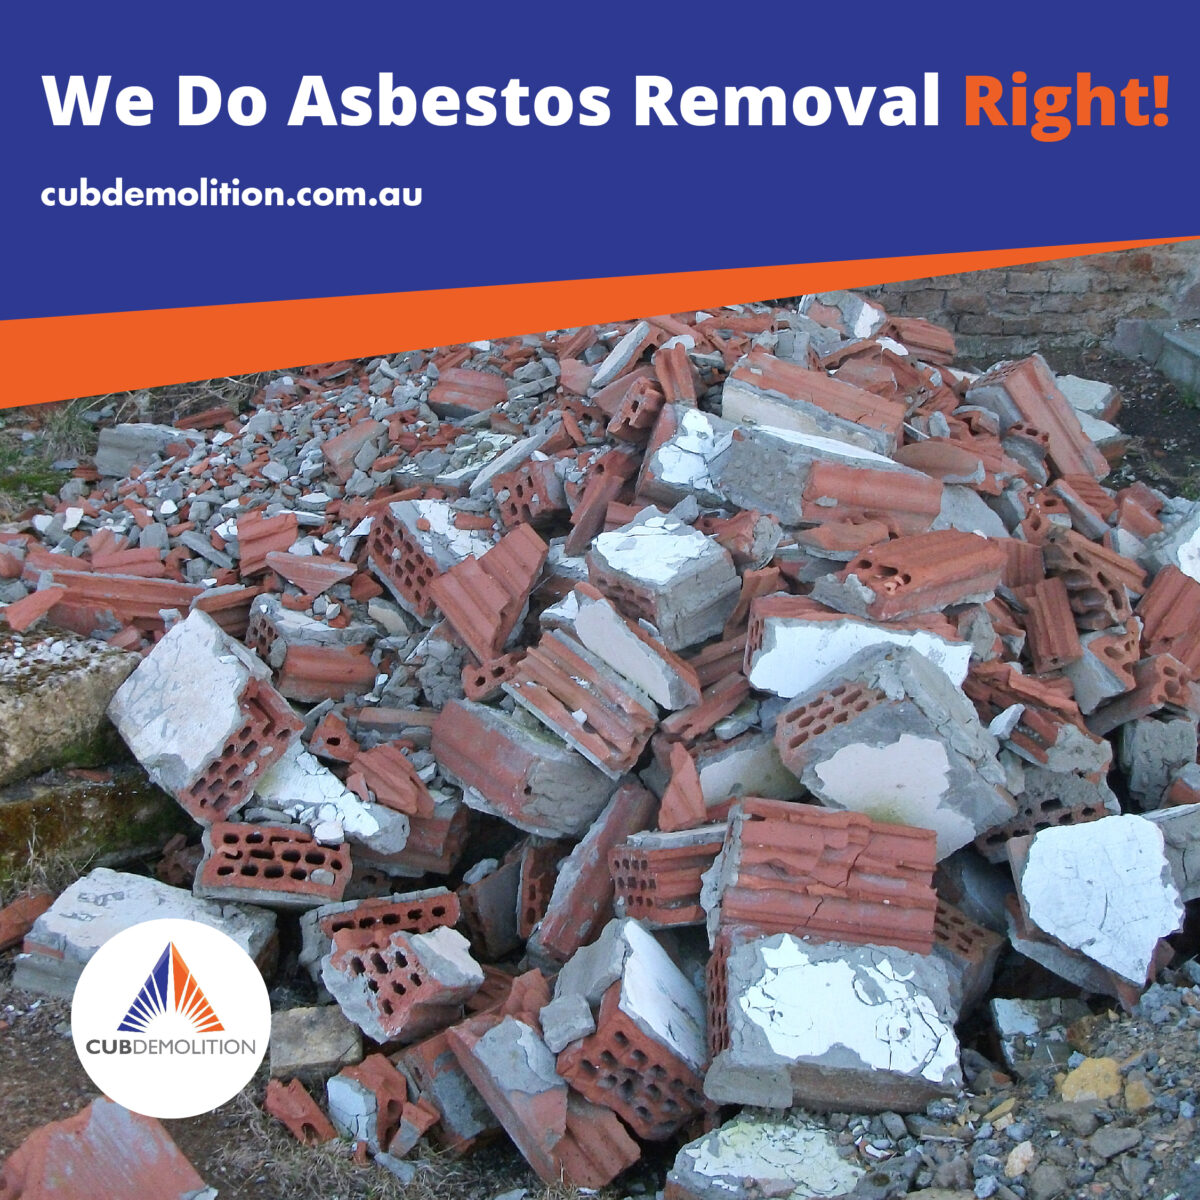 in Newcastle, NSW asbestos removal